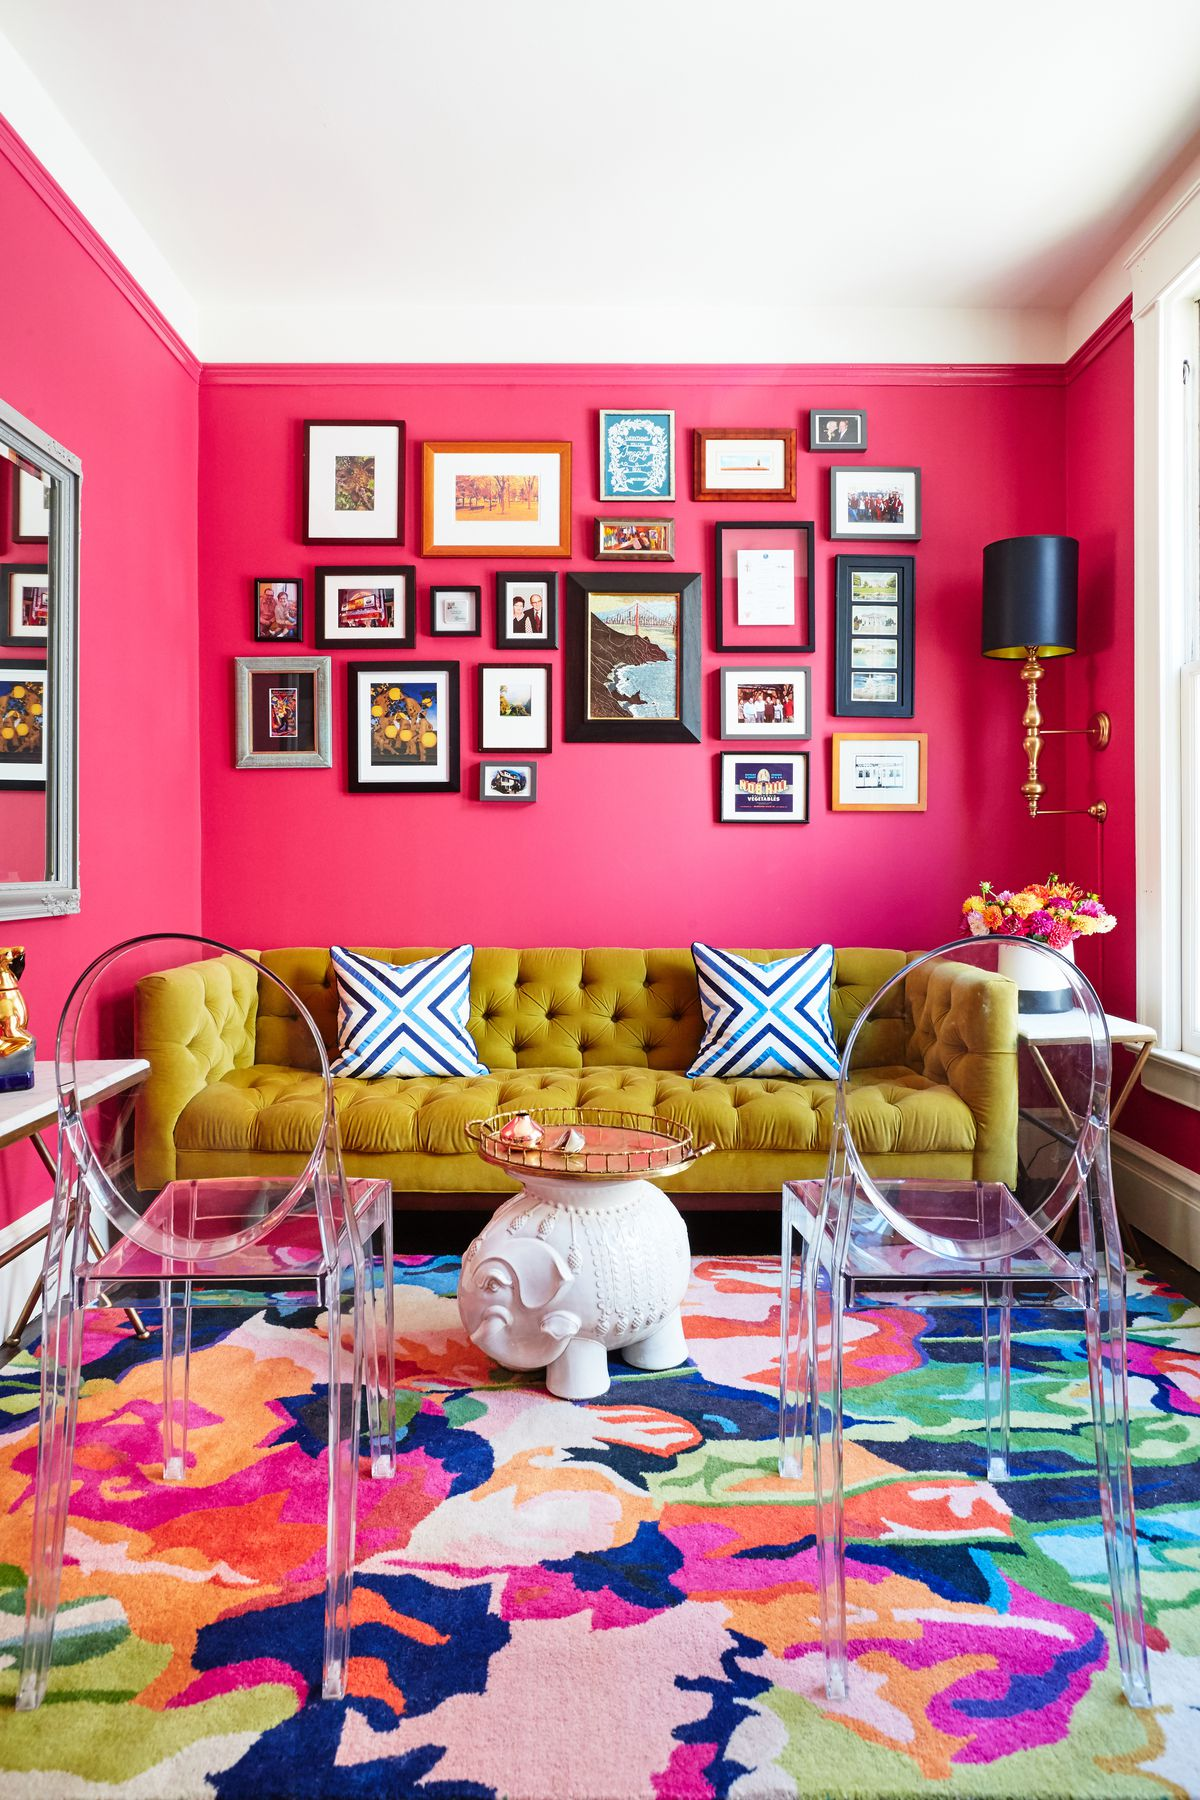 Red Colour Wall: 15 Bold Interior Paint Hues For Your Home